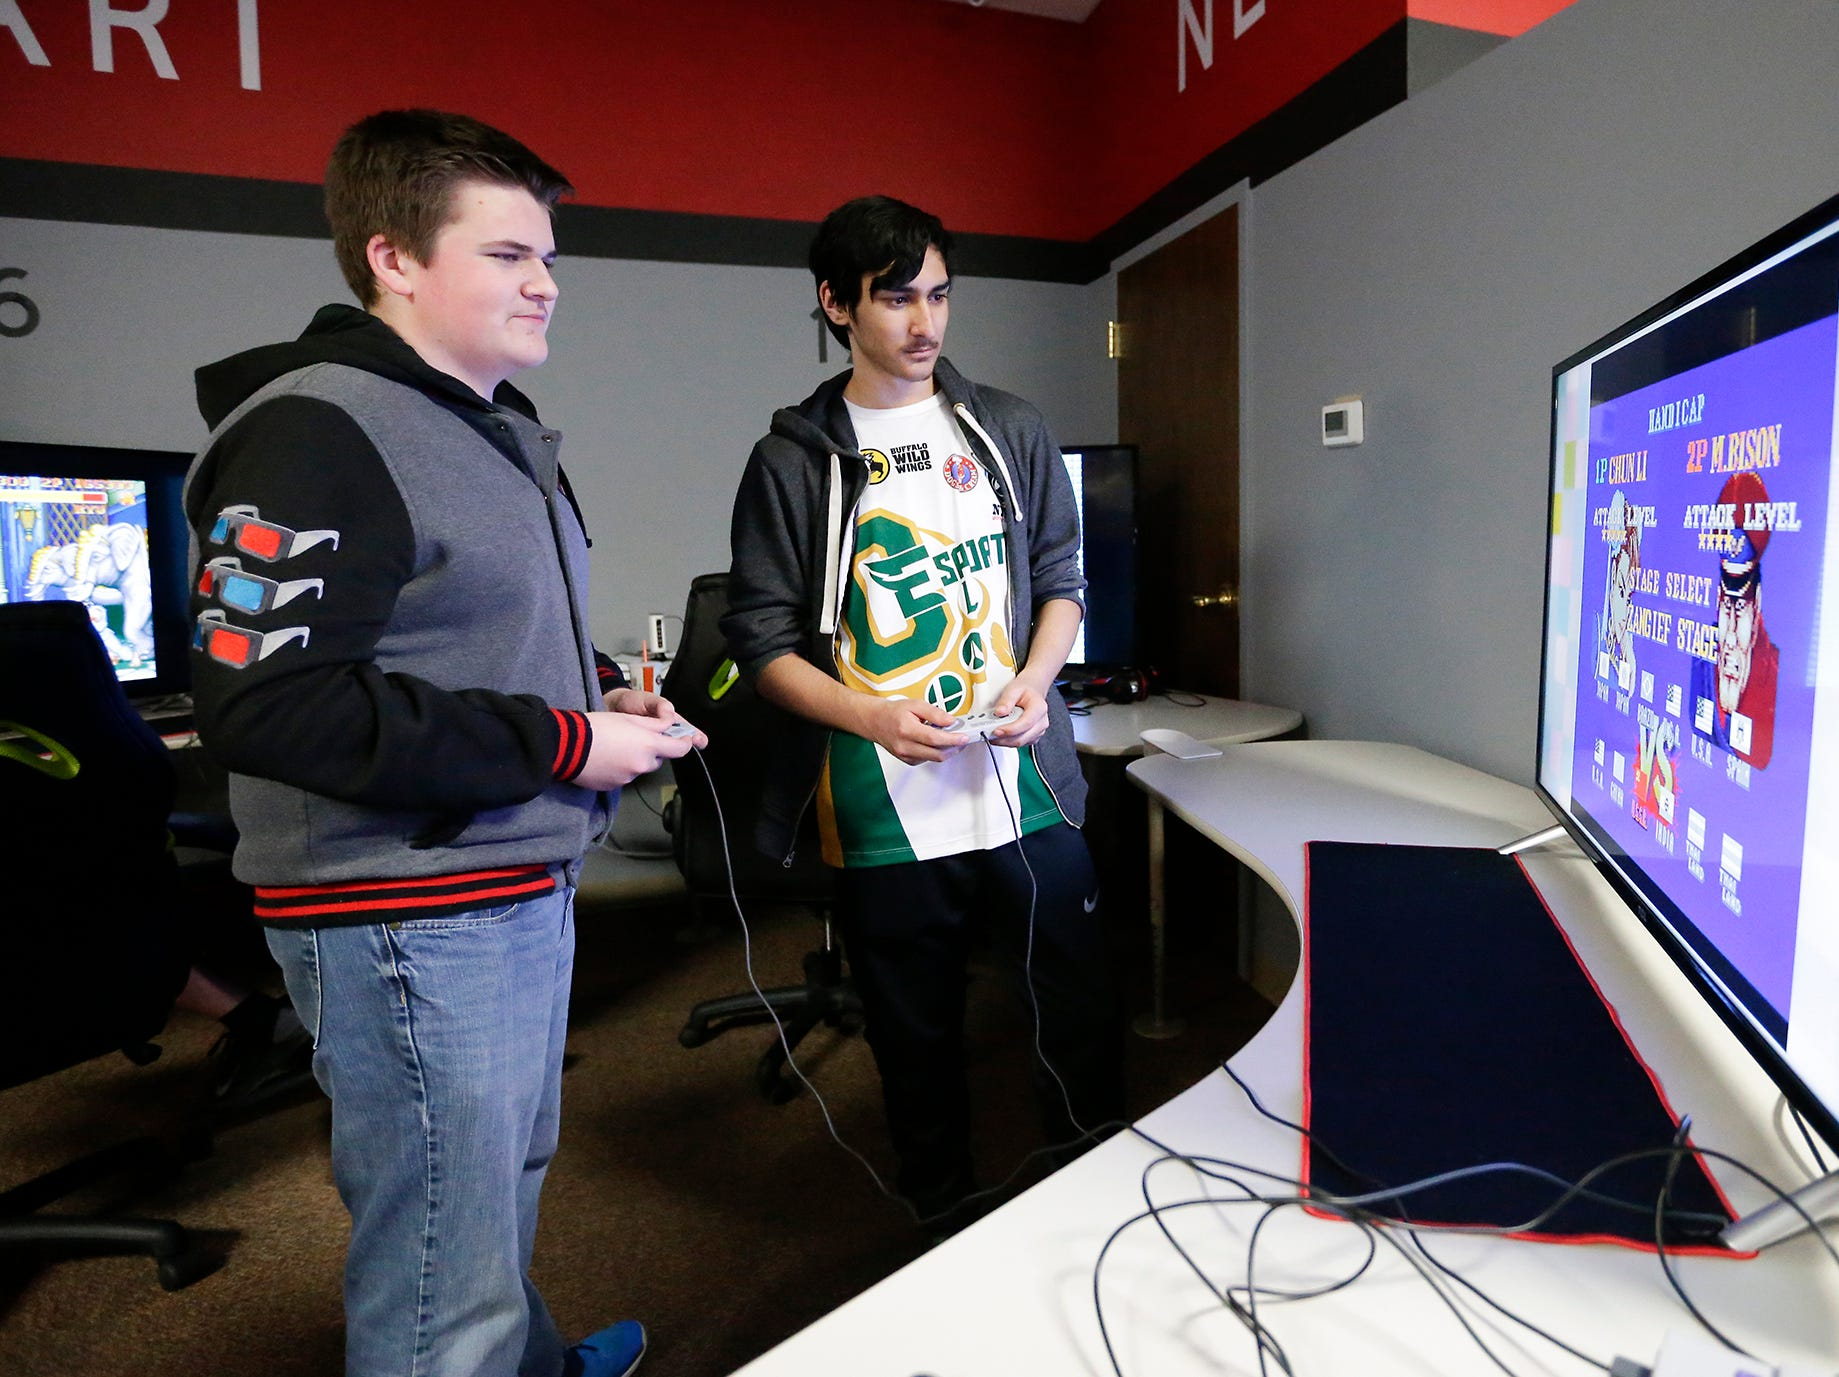 Luke Navin and Addison James-Perkins of Racine play a video game at the Wisconsin High School Esports Association's State Championship Saturday, April 13, 2019 at Game On in Fond du Lac Wisconsin. Teams compete in 4 games during the event. Overwatch, Rocket League, League of Legends, and Smash Ultimate. Doug Raflik/USA TODAY NETWORK-Wisconsin